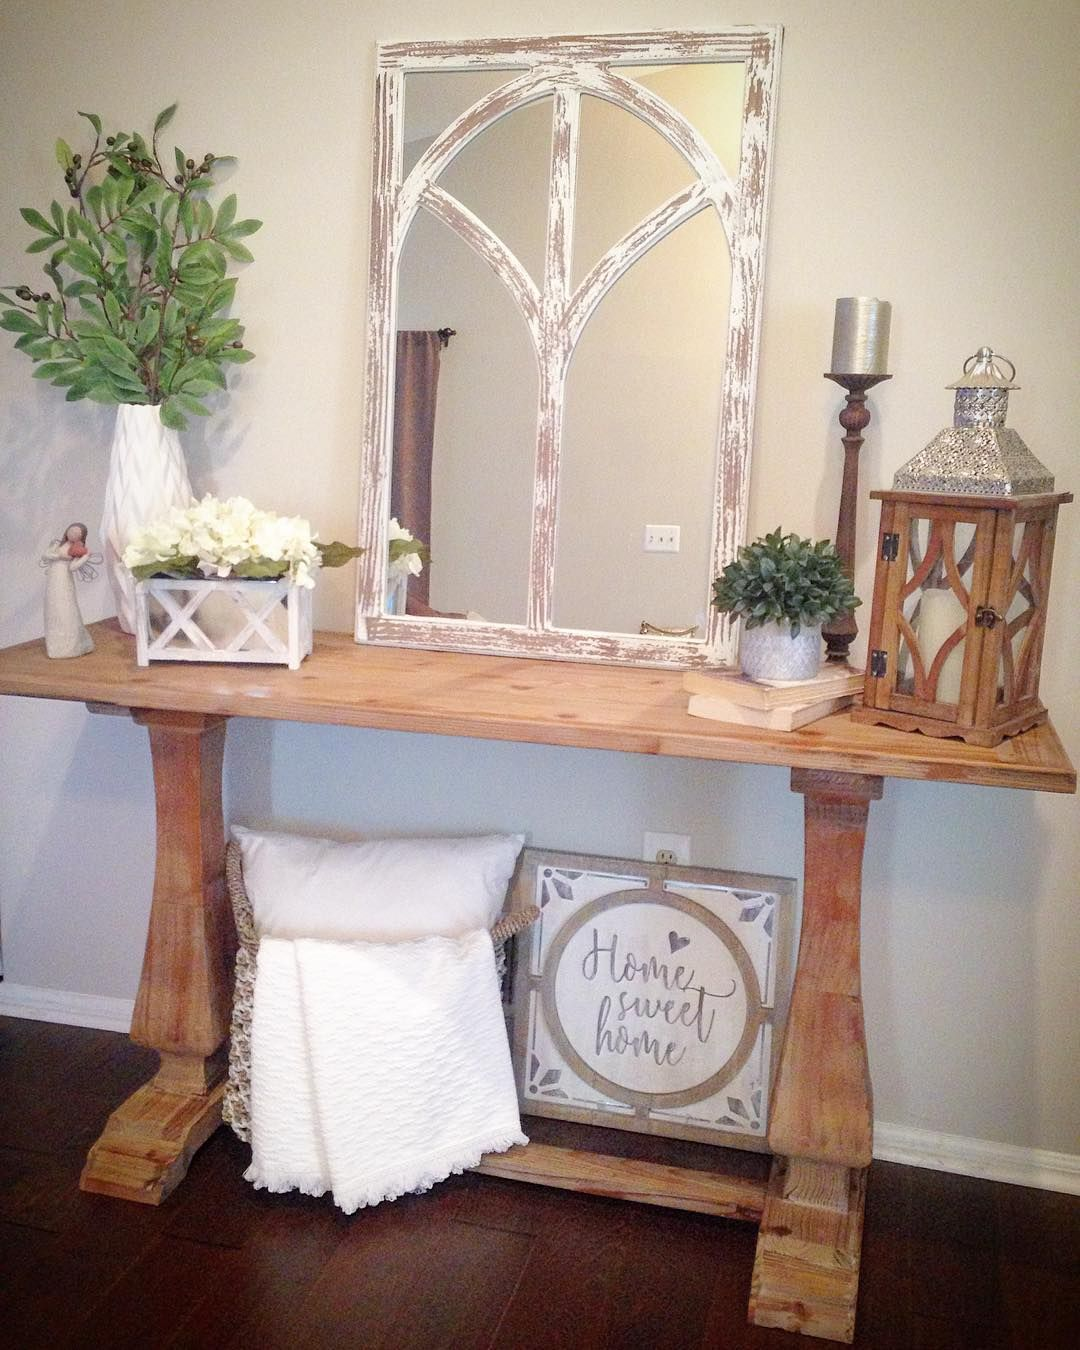 43 Beautiful Rustic Entryway Decoration Ideas: Farmhouse Style Console Table Entryway Rustic Distressed